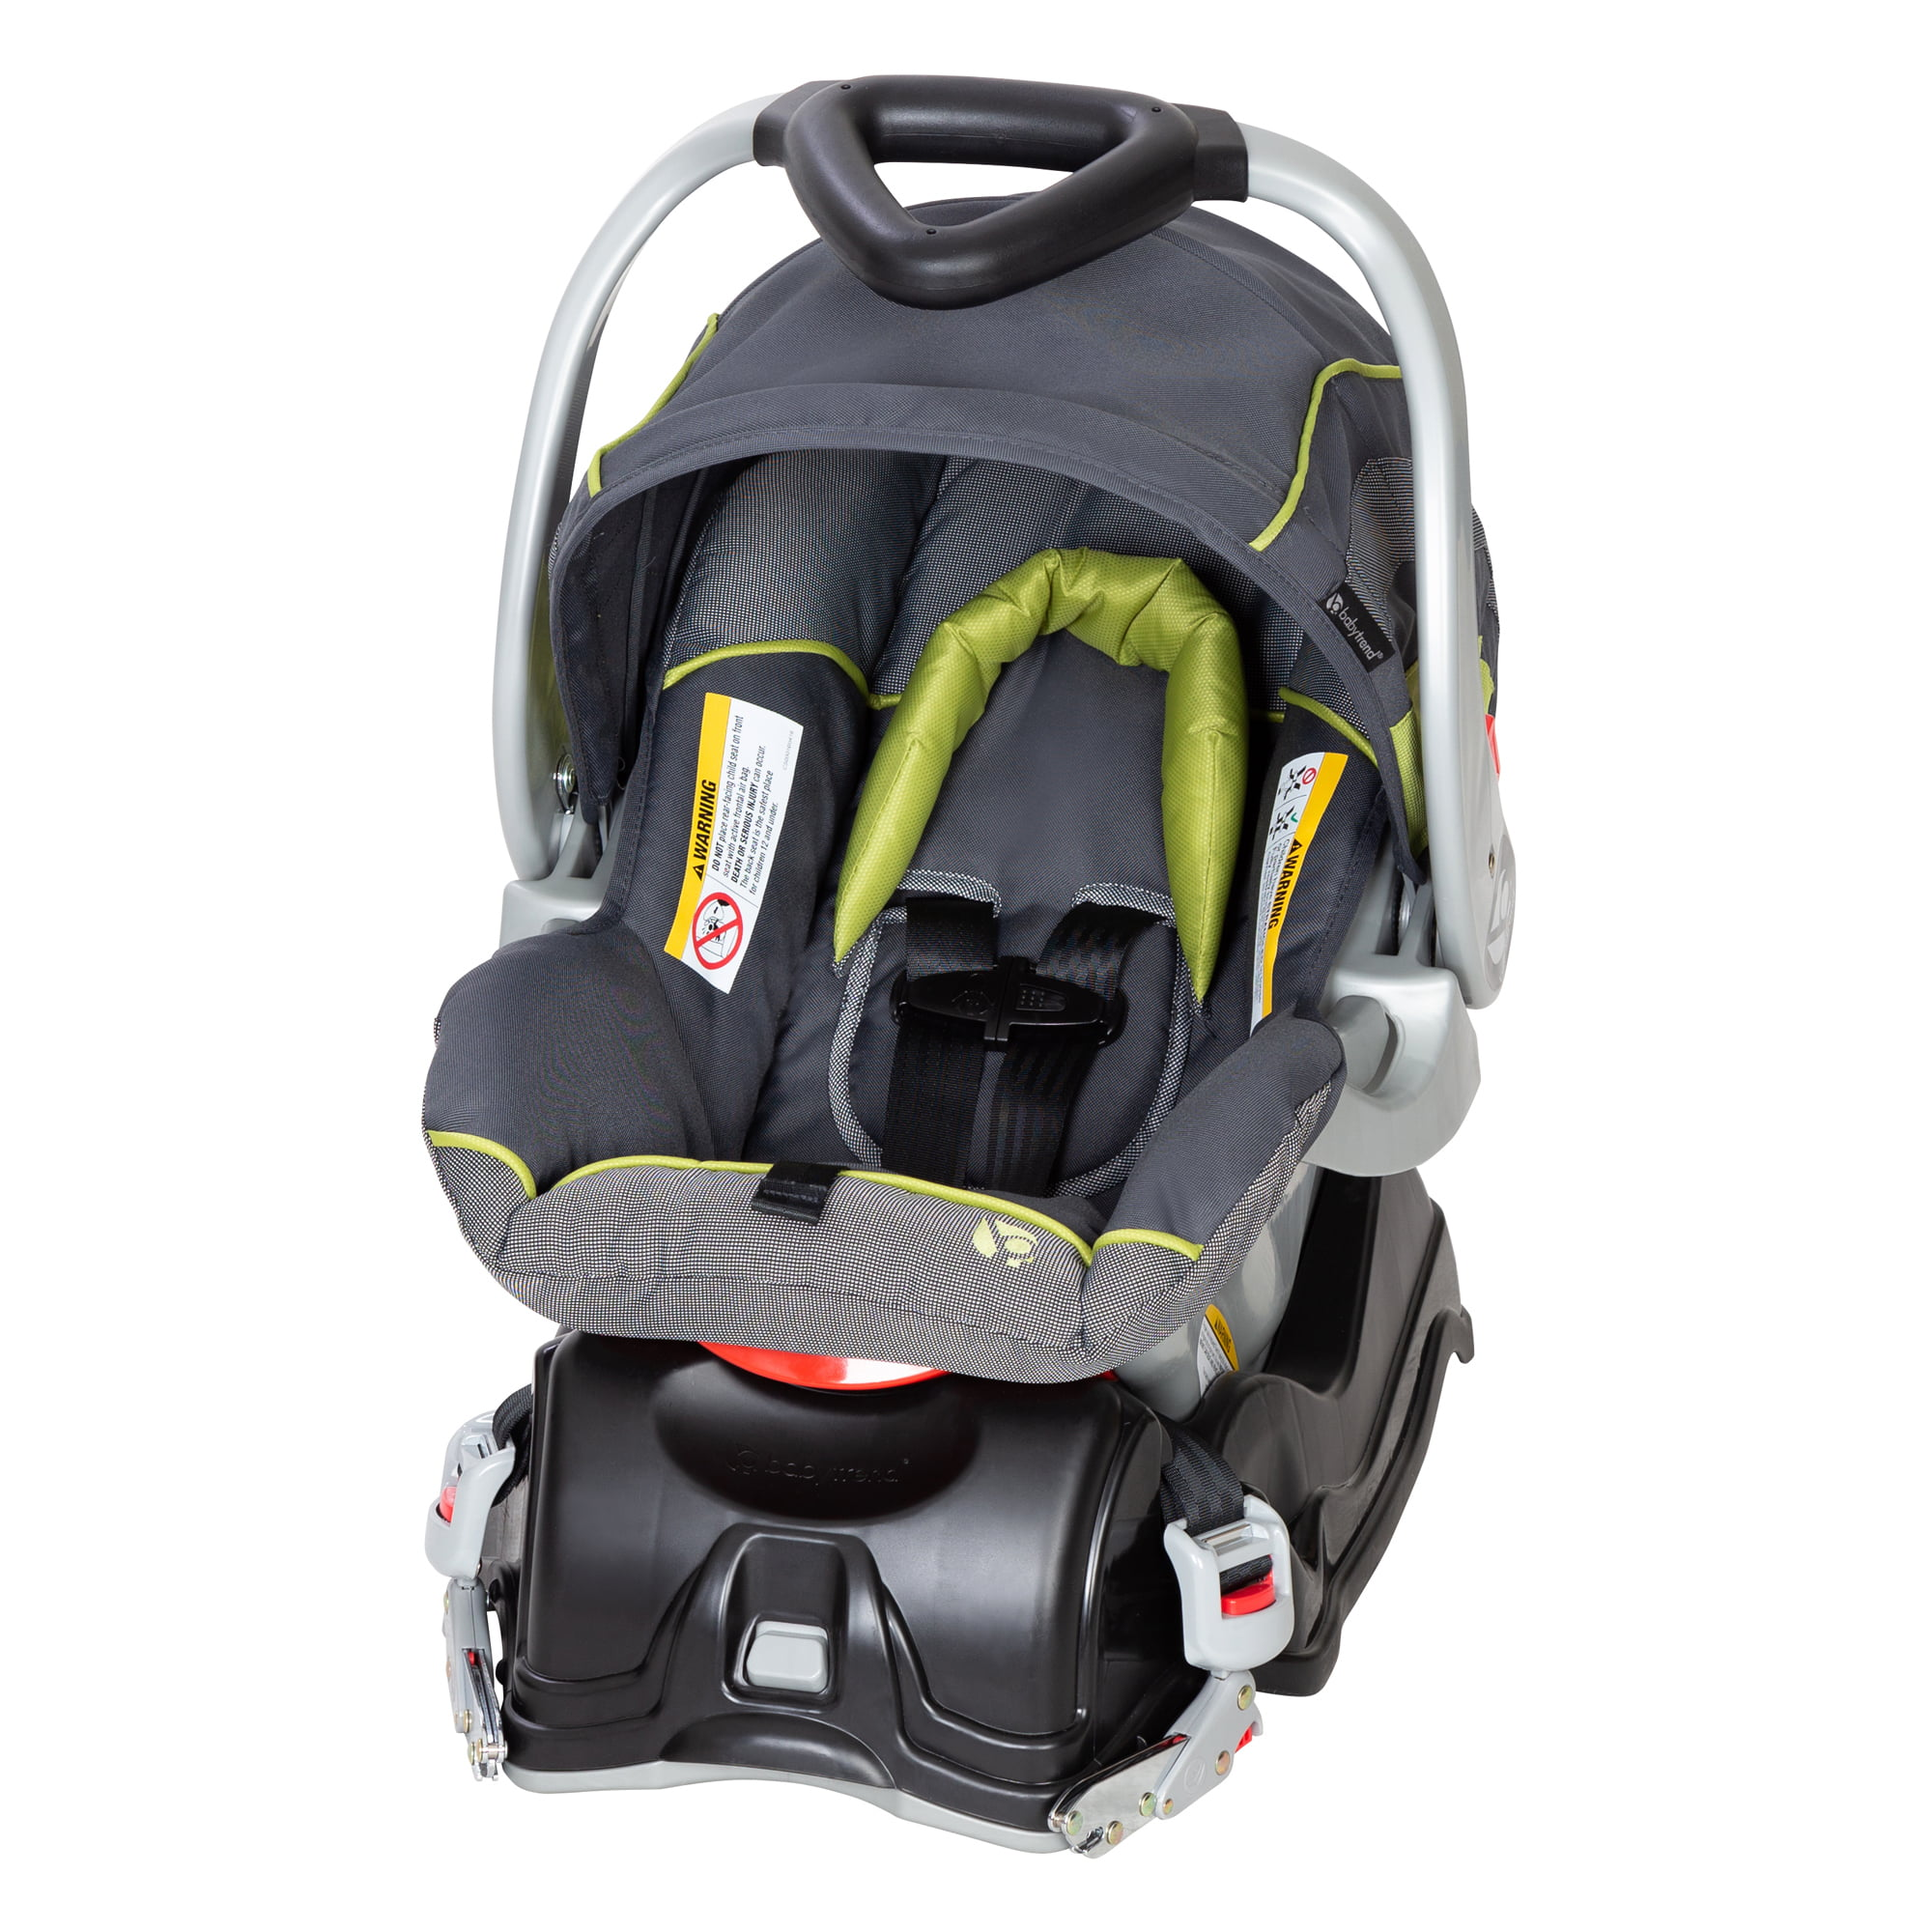 Baby Trend Ez Ride 5 Travel System Mums ~ NEW SEALED